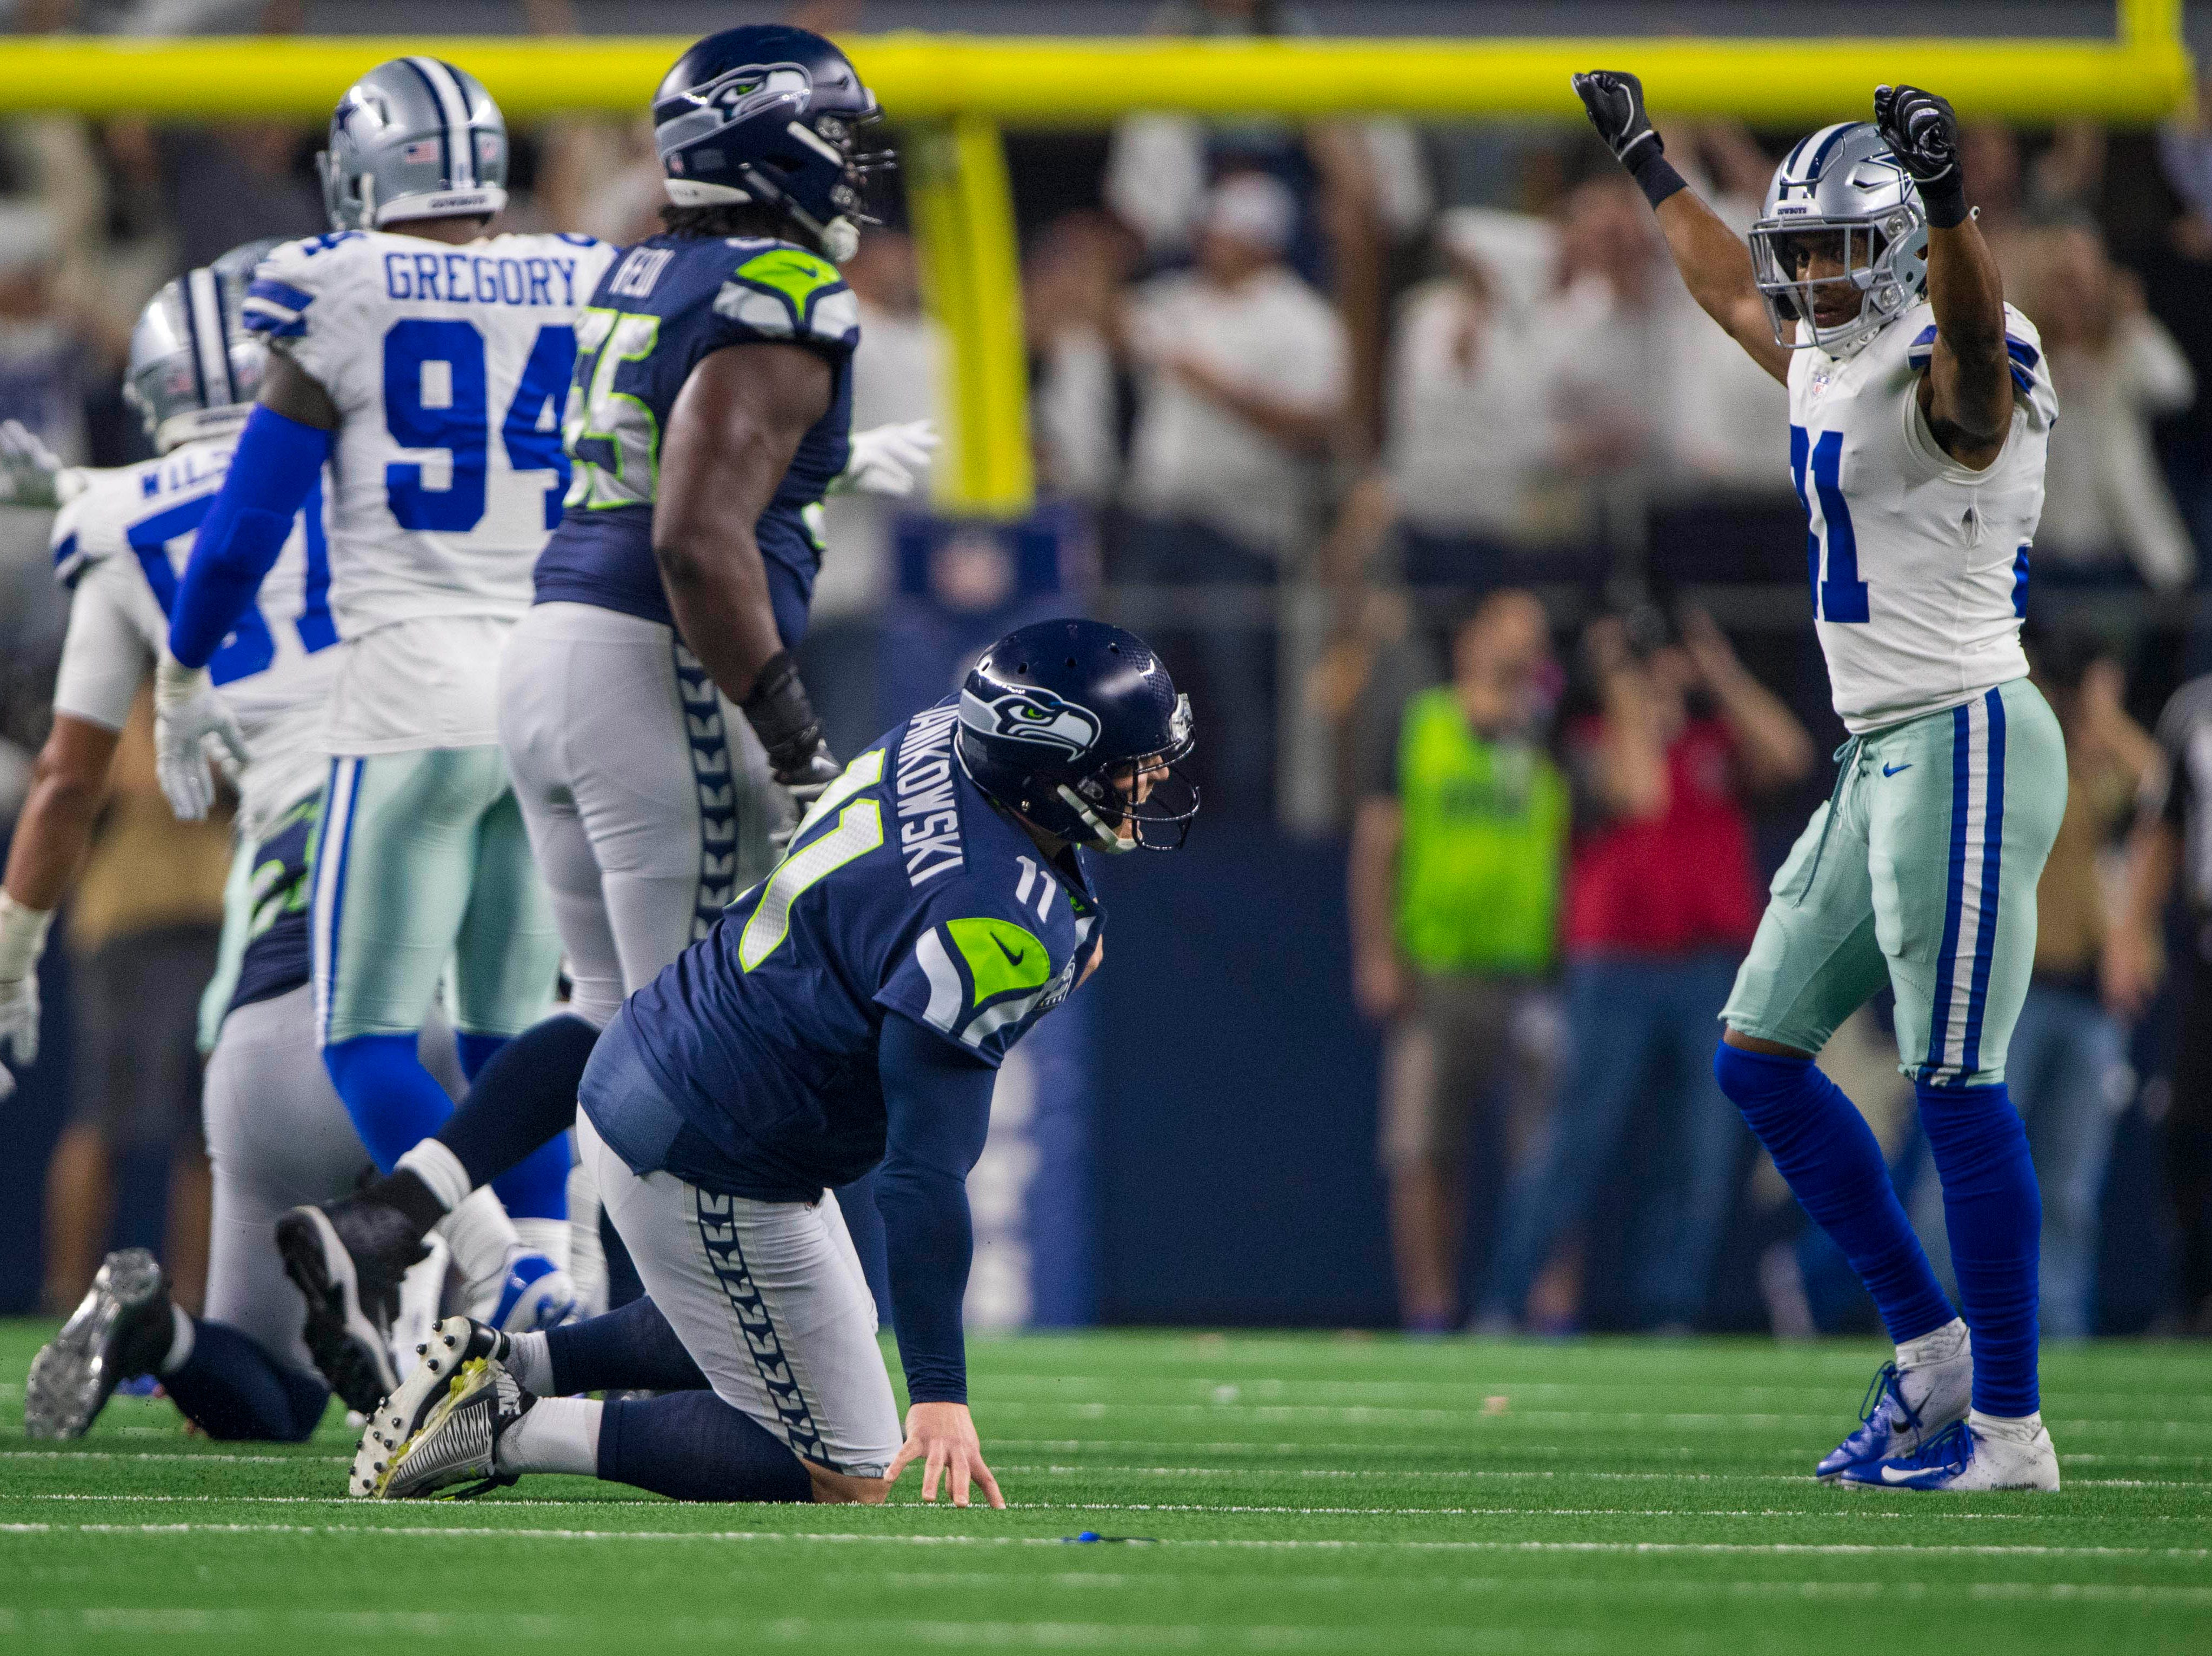 Seattle Seahawks kicker Sebastian Janikowski (11) reacts after suffering an apparent injury while attempting to kick a field goal against the Dallas Cowboys at the end of the second quarter at AT&T Stadium.